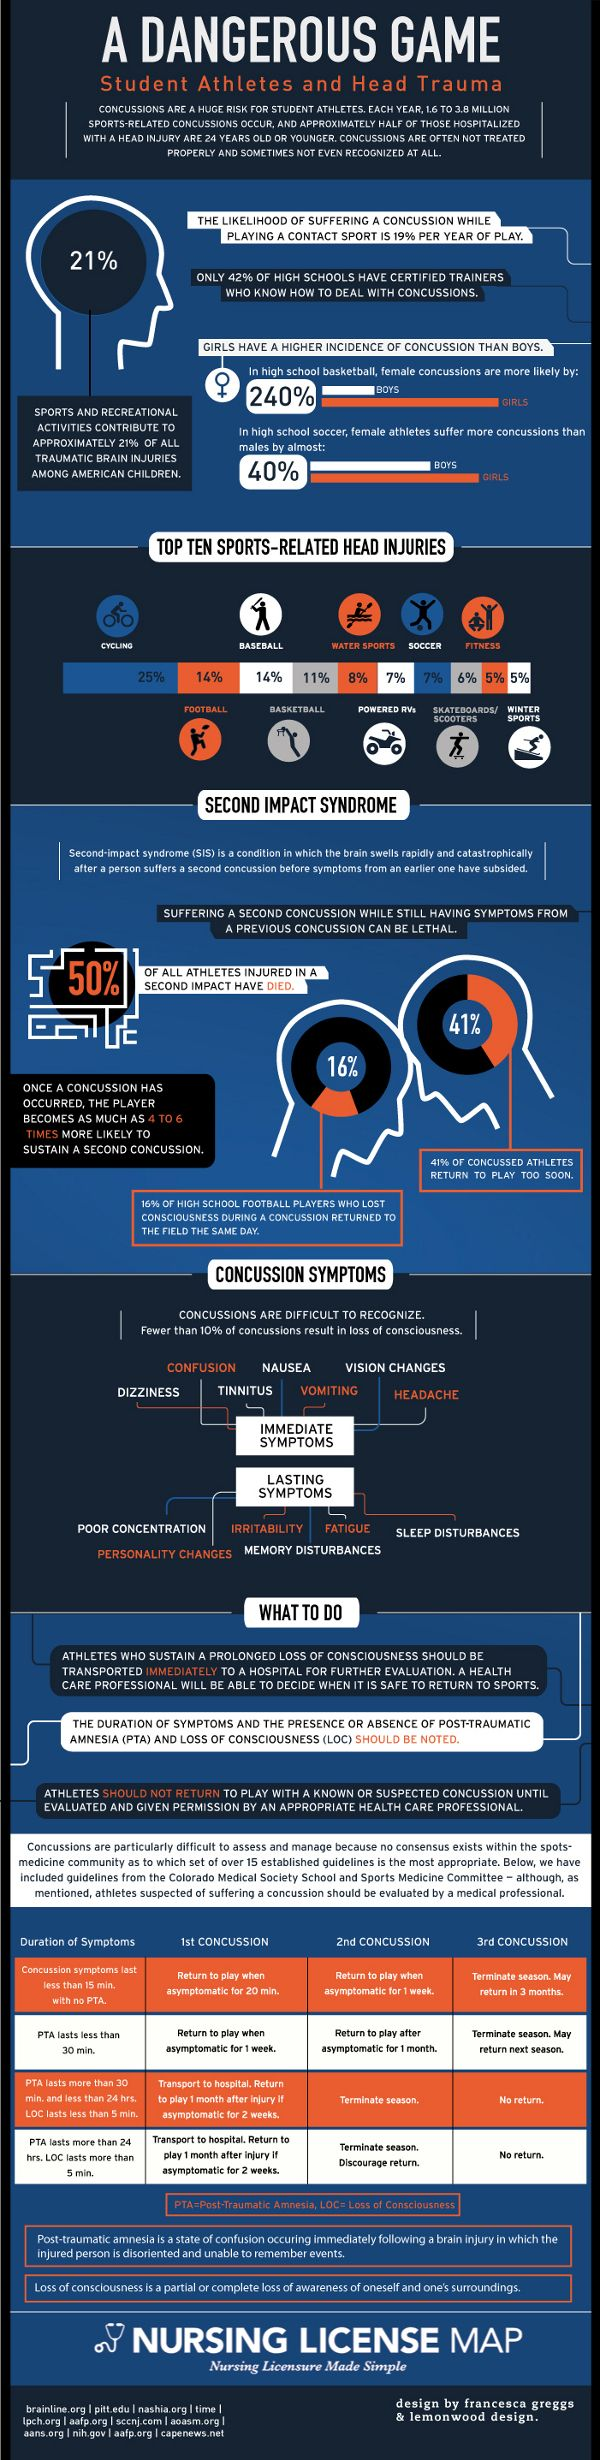 Student Athlete Concussions : Sports and recreational activities account for 21% of concussions developing to head trauma among American children. Find more stats about concussion occurrences on student fields, learn about the immediate and post-traumatic symptoms, how to recognize them and how to deal with an injured player.  > http://infographicsmania.com/student-athlete-concussions/